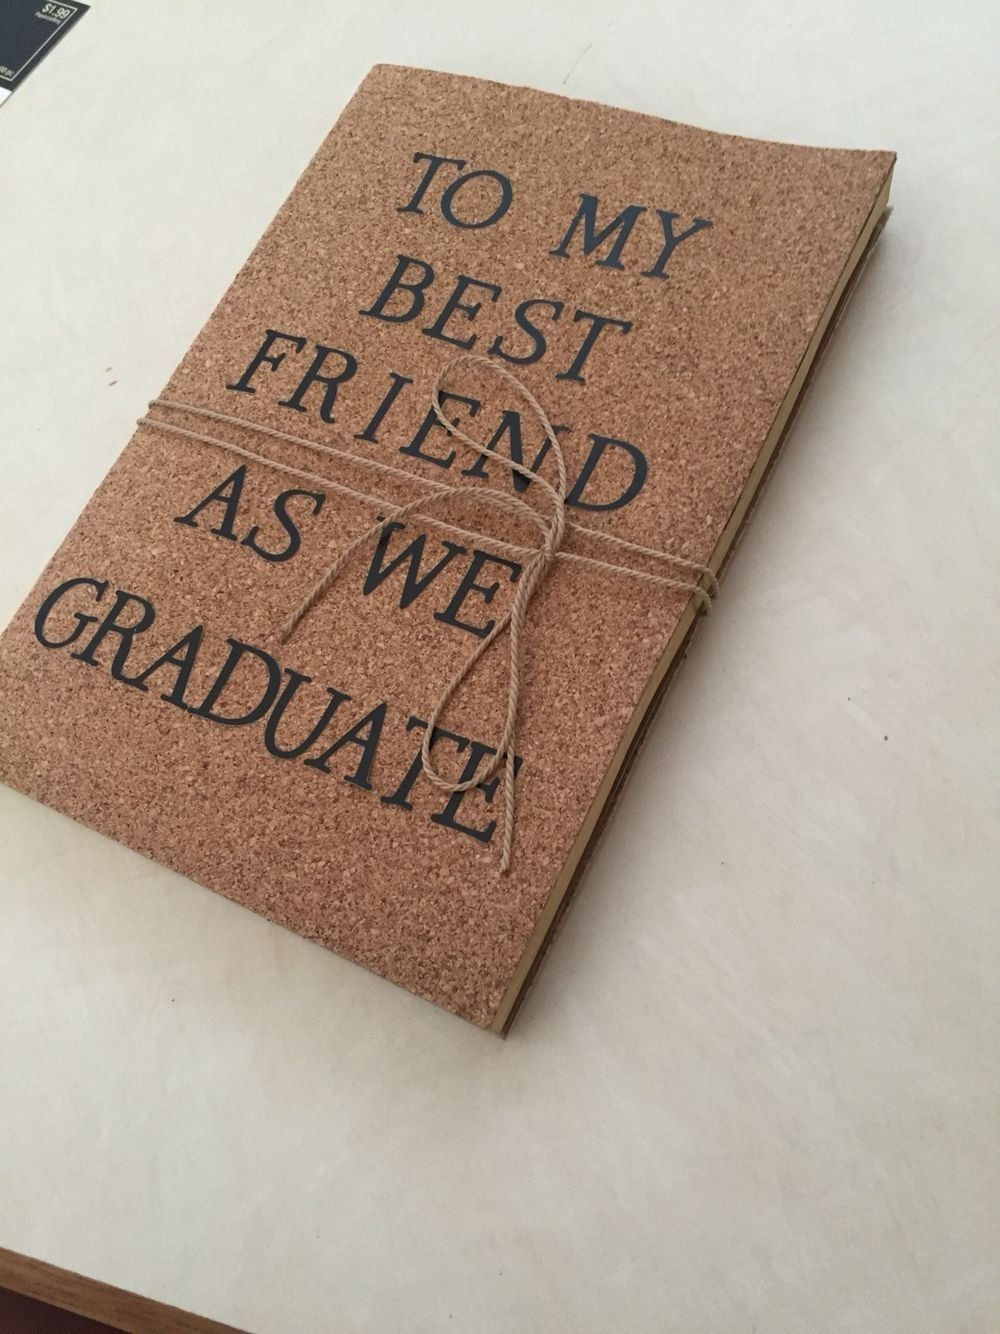 10 Amazing Graduation Gift Ideas For Best Friend a journal i made for my best friend as a graduation gift 2021